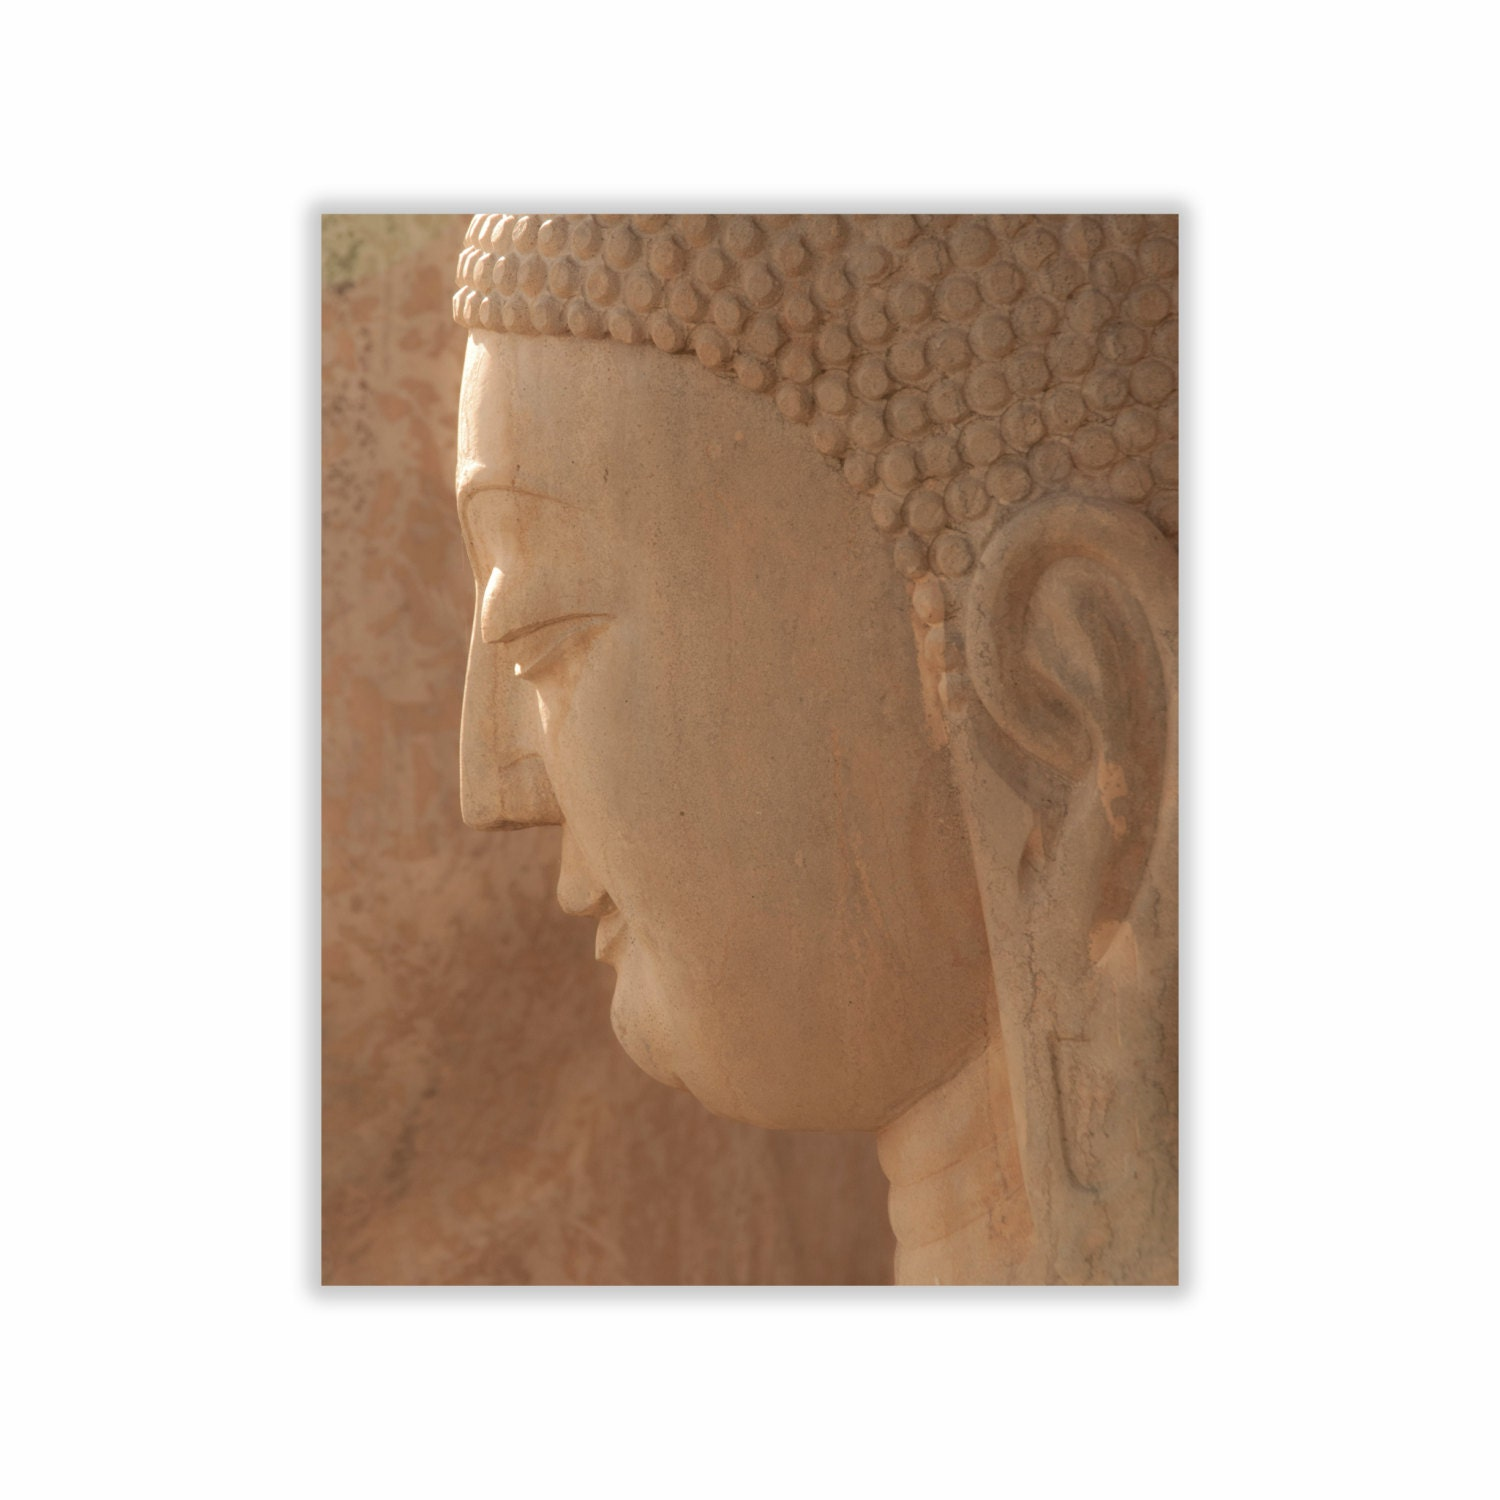 Popular items for buddha decor on Etsy